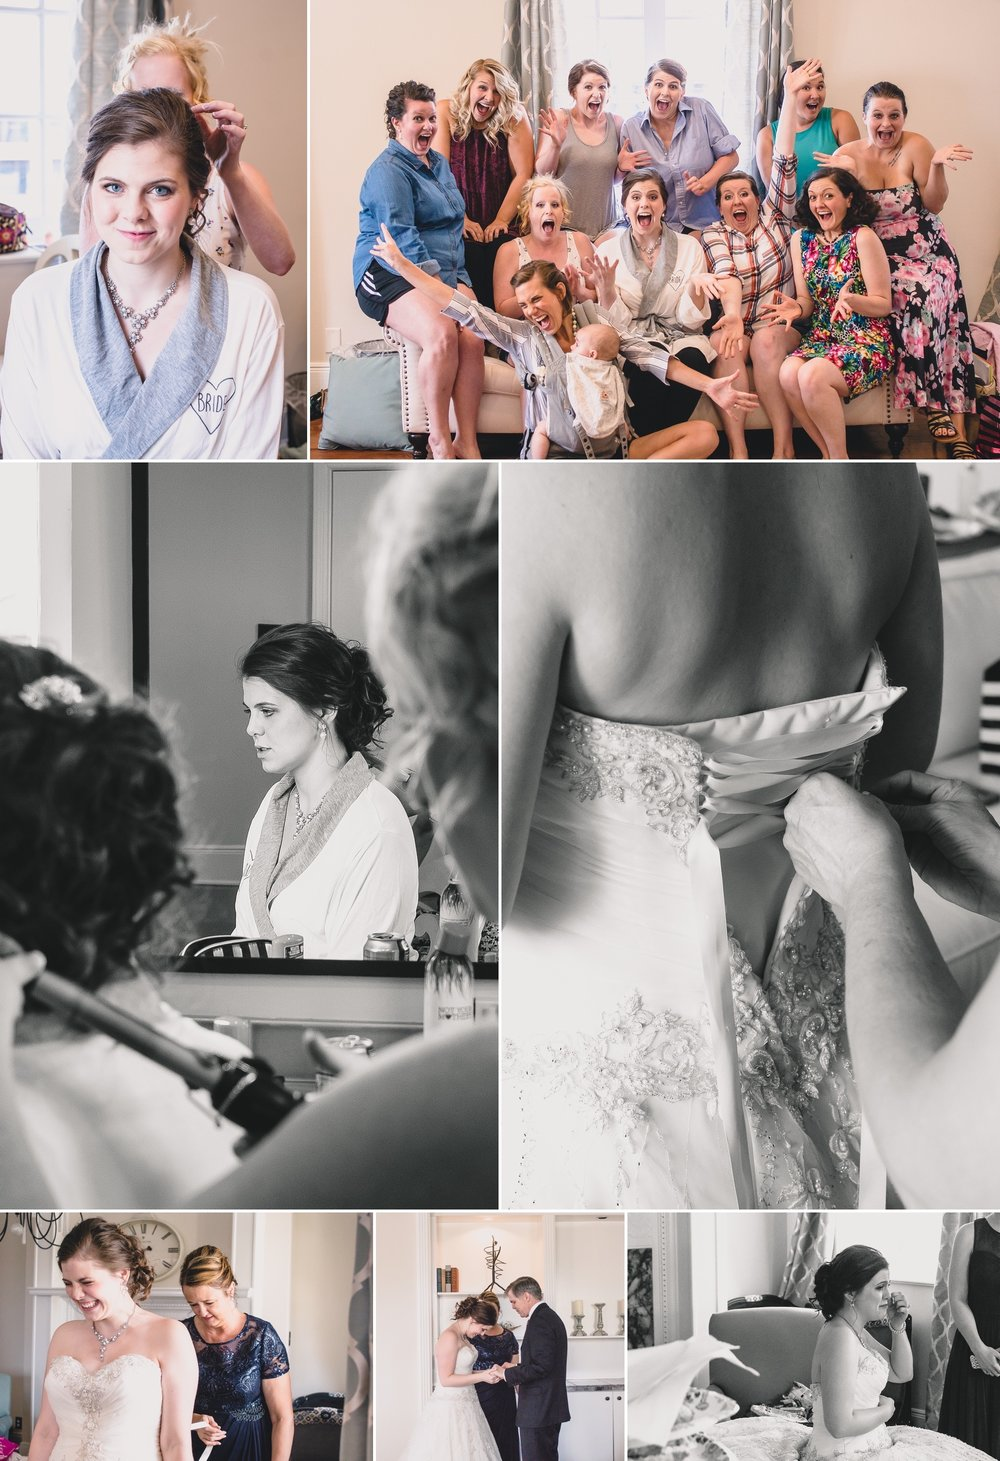 fairytale downtown wedding at the historic post office hampton virginia by jonathan hannah photography